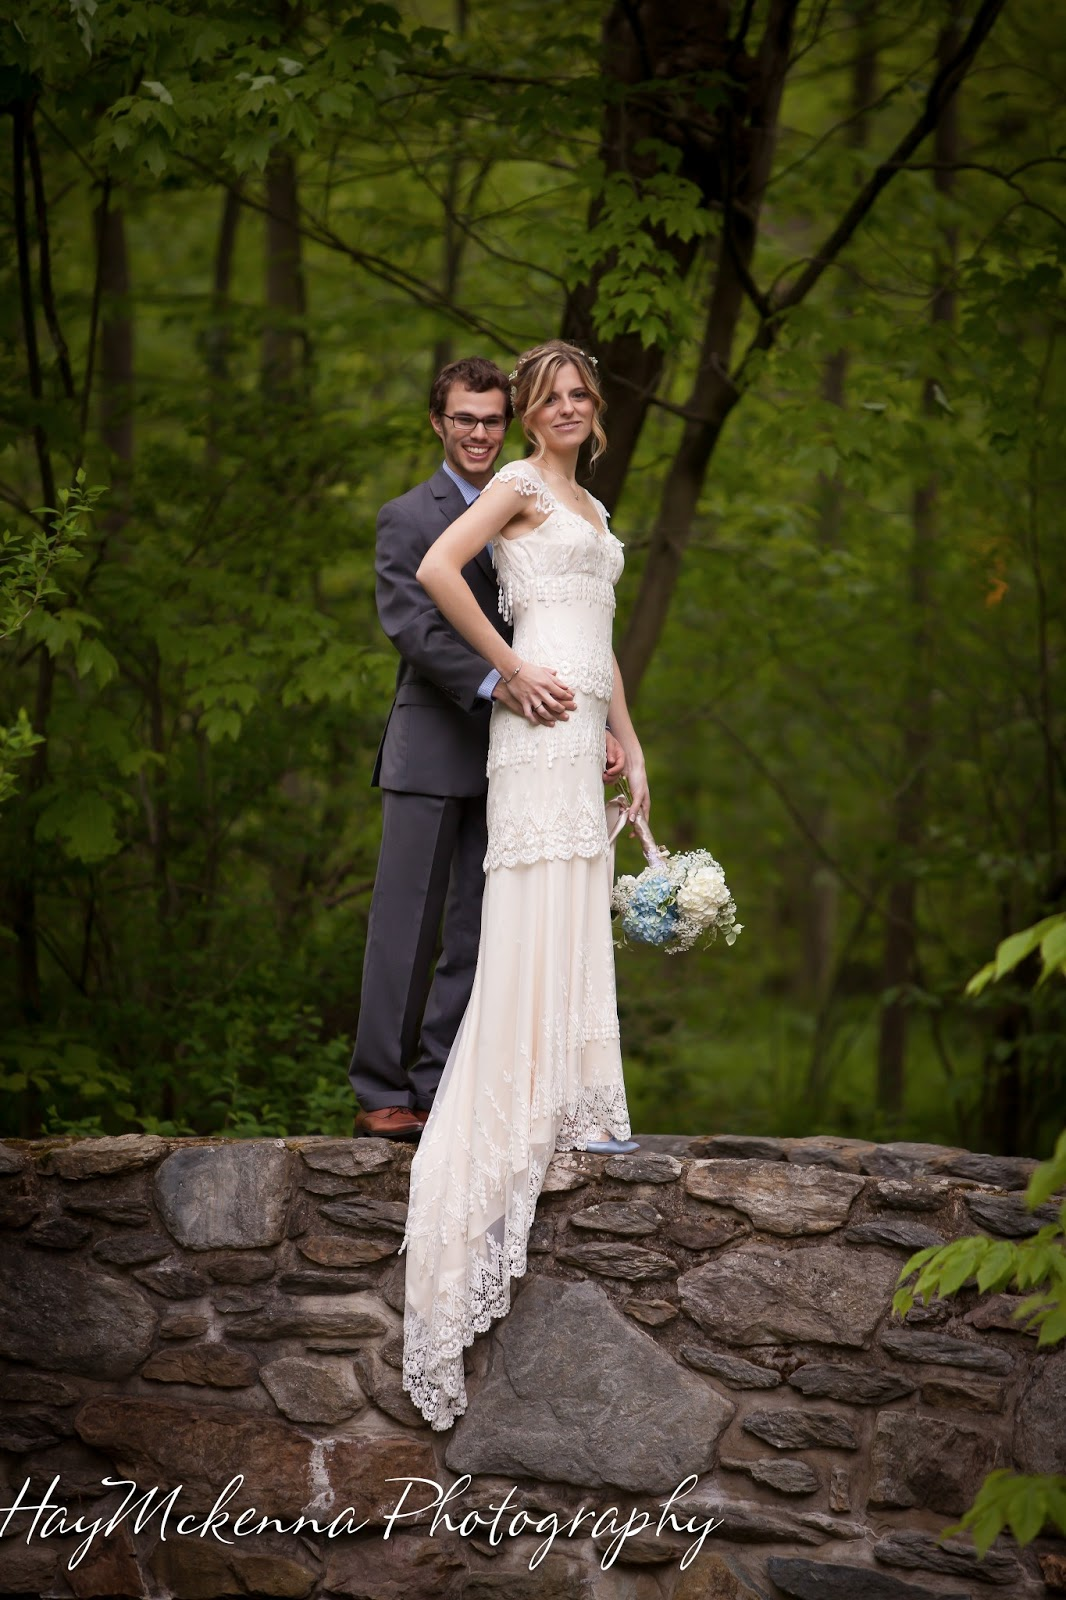 HayMckenna Photography: Outdoor Wedding in the Woods at ...